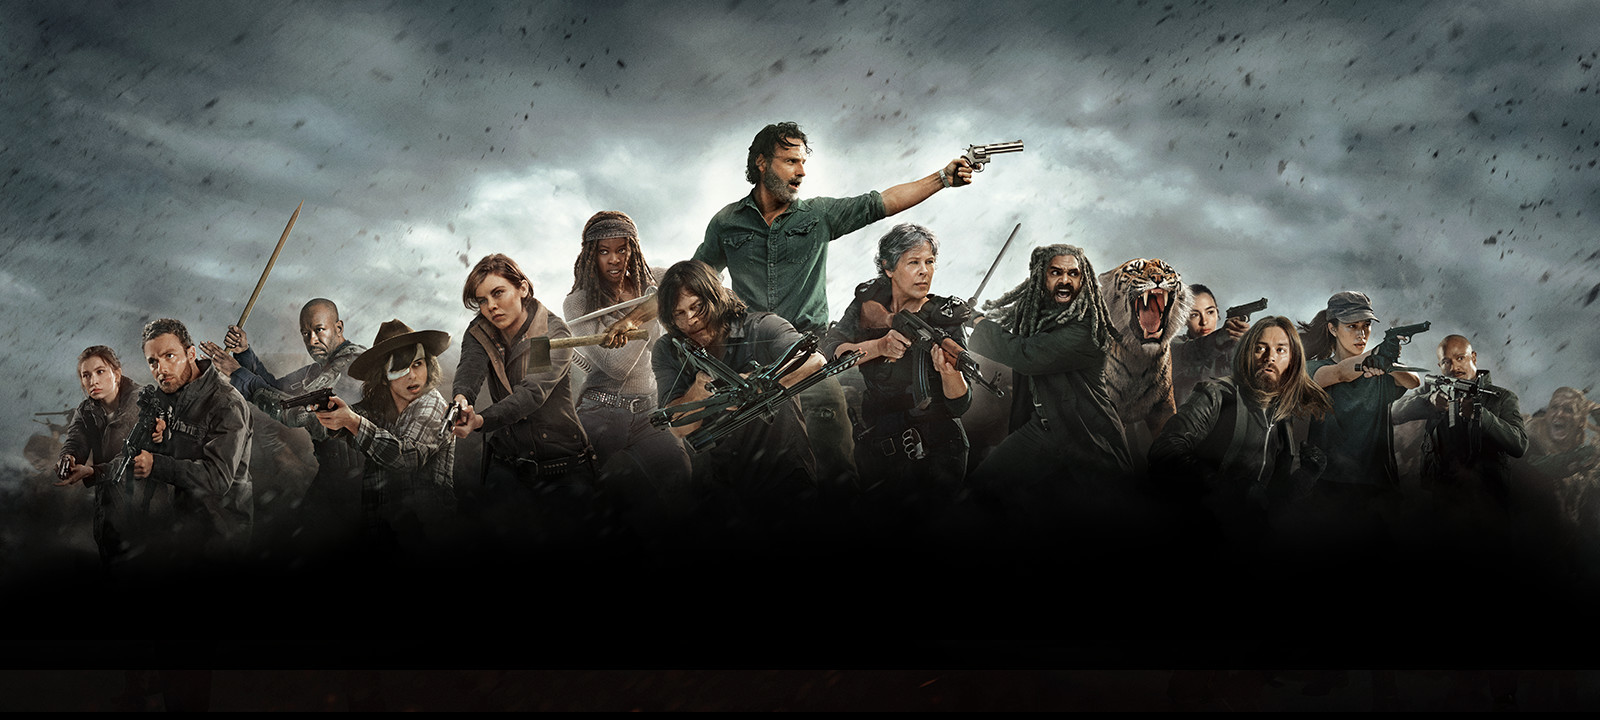 the-walking-dead-season-8-key-art-rick-lincoln-daryl-reedus-800×600